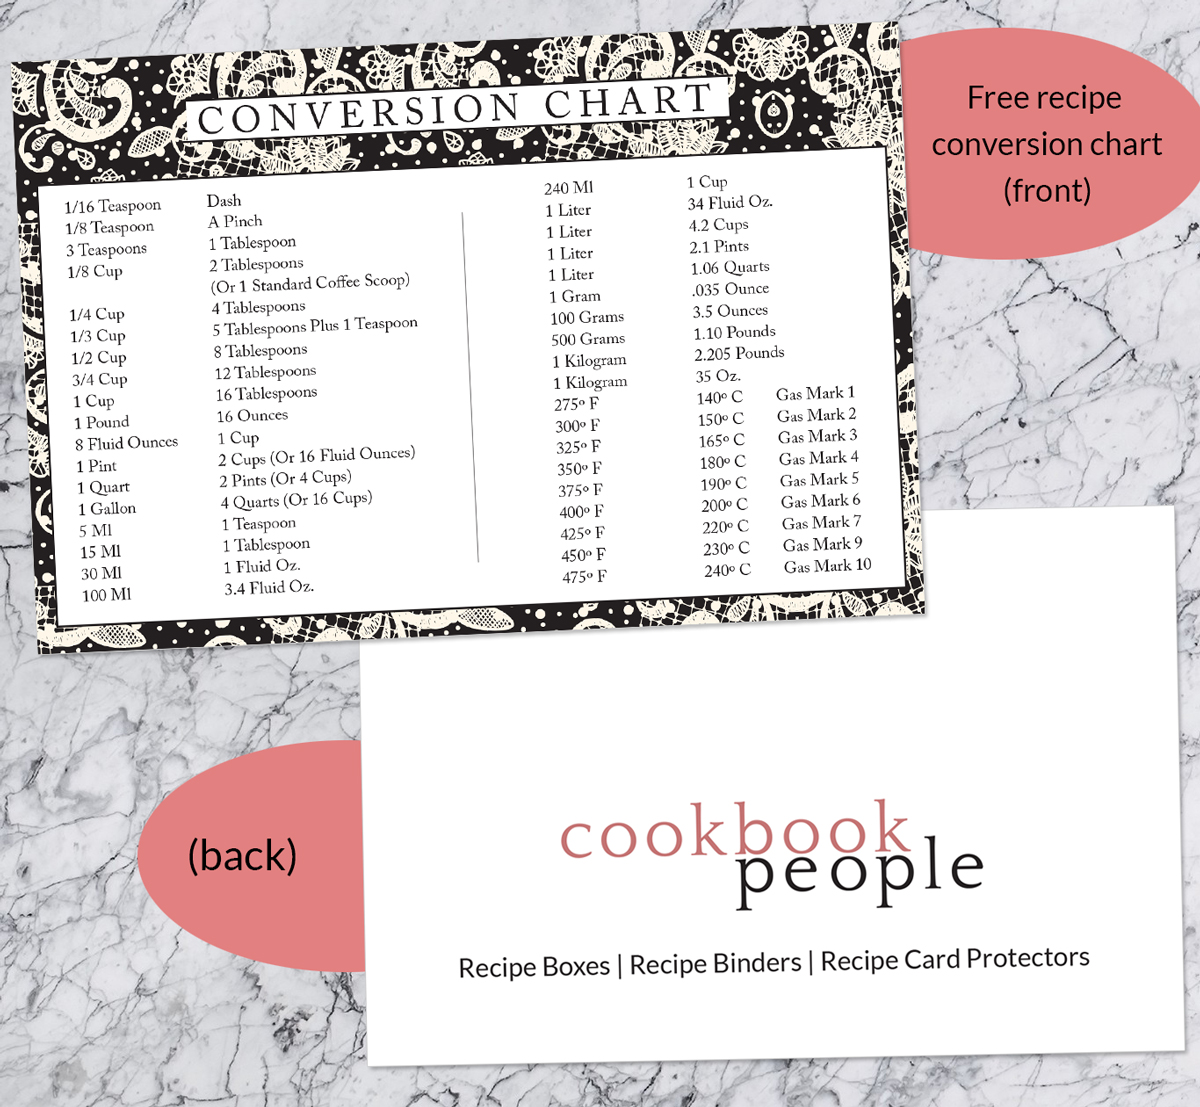 Black checkers index card or gift card or elegant recipe card includes free recipe conversion chart conversionchartcomp2g nvjuhfo Image collections